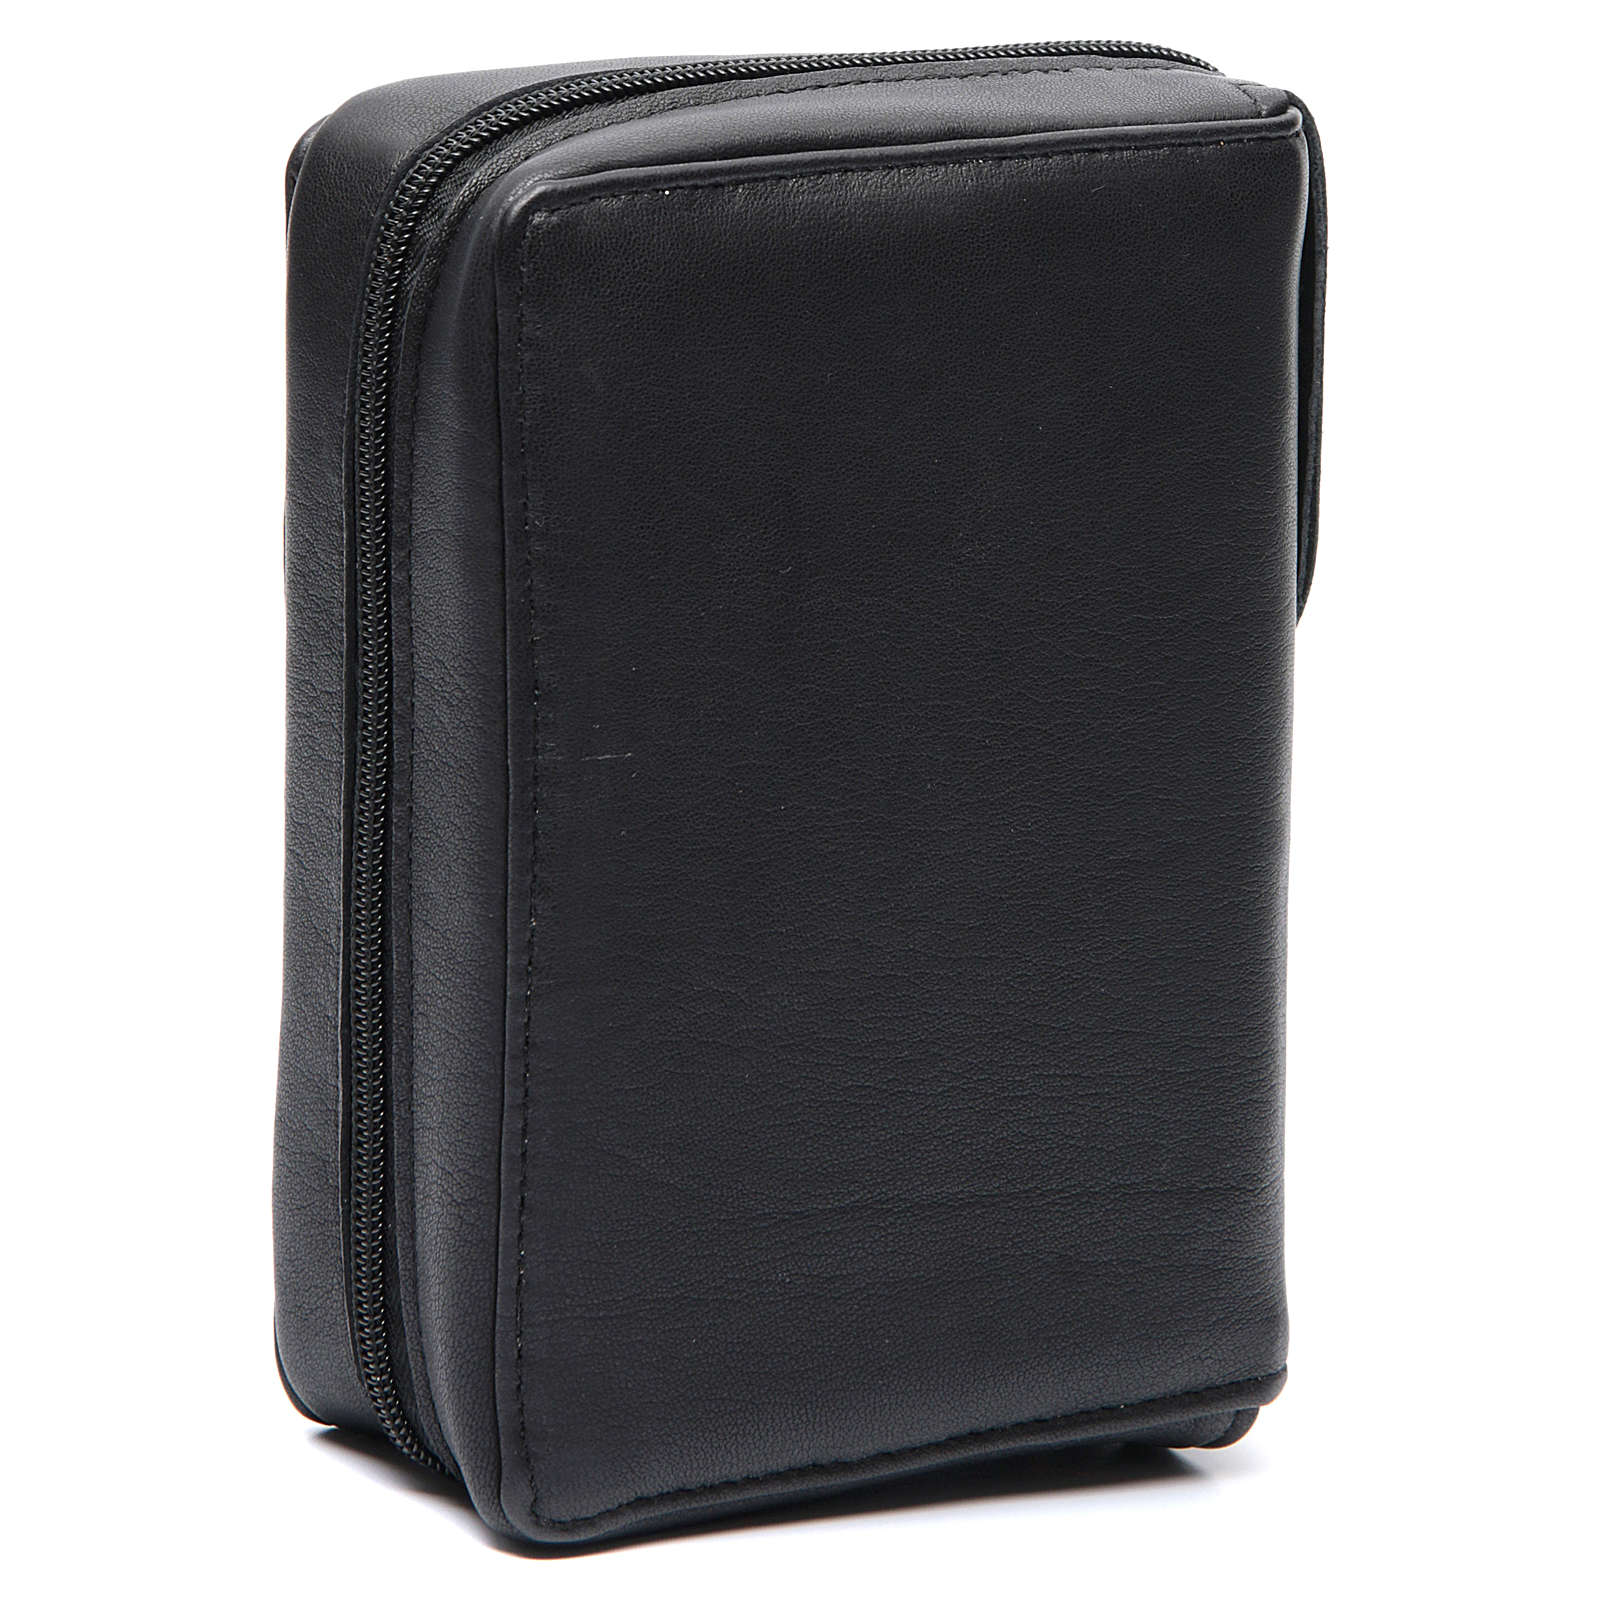 Case for Daily Prayer real black leather 4